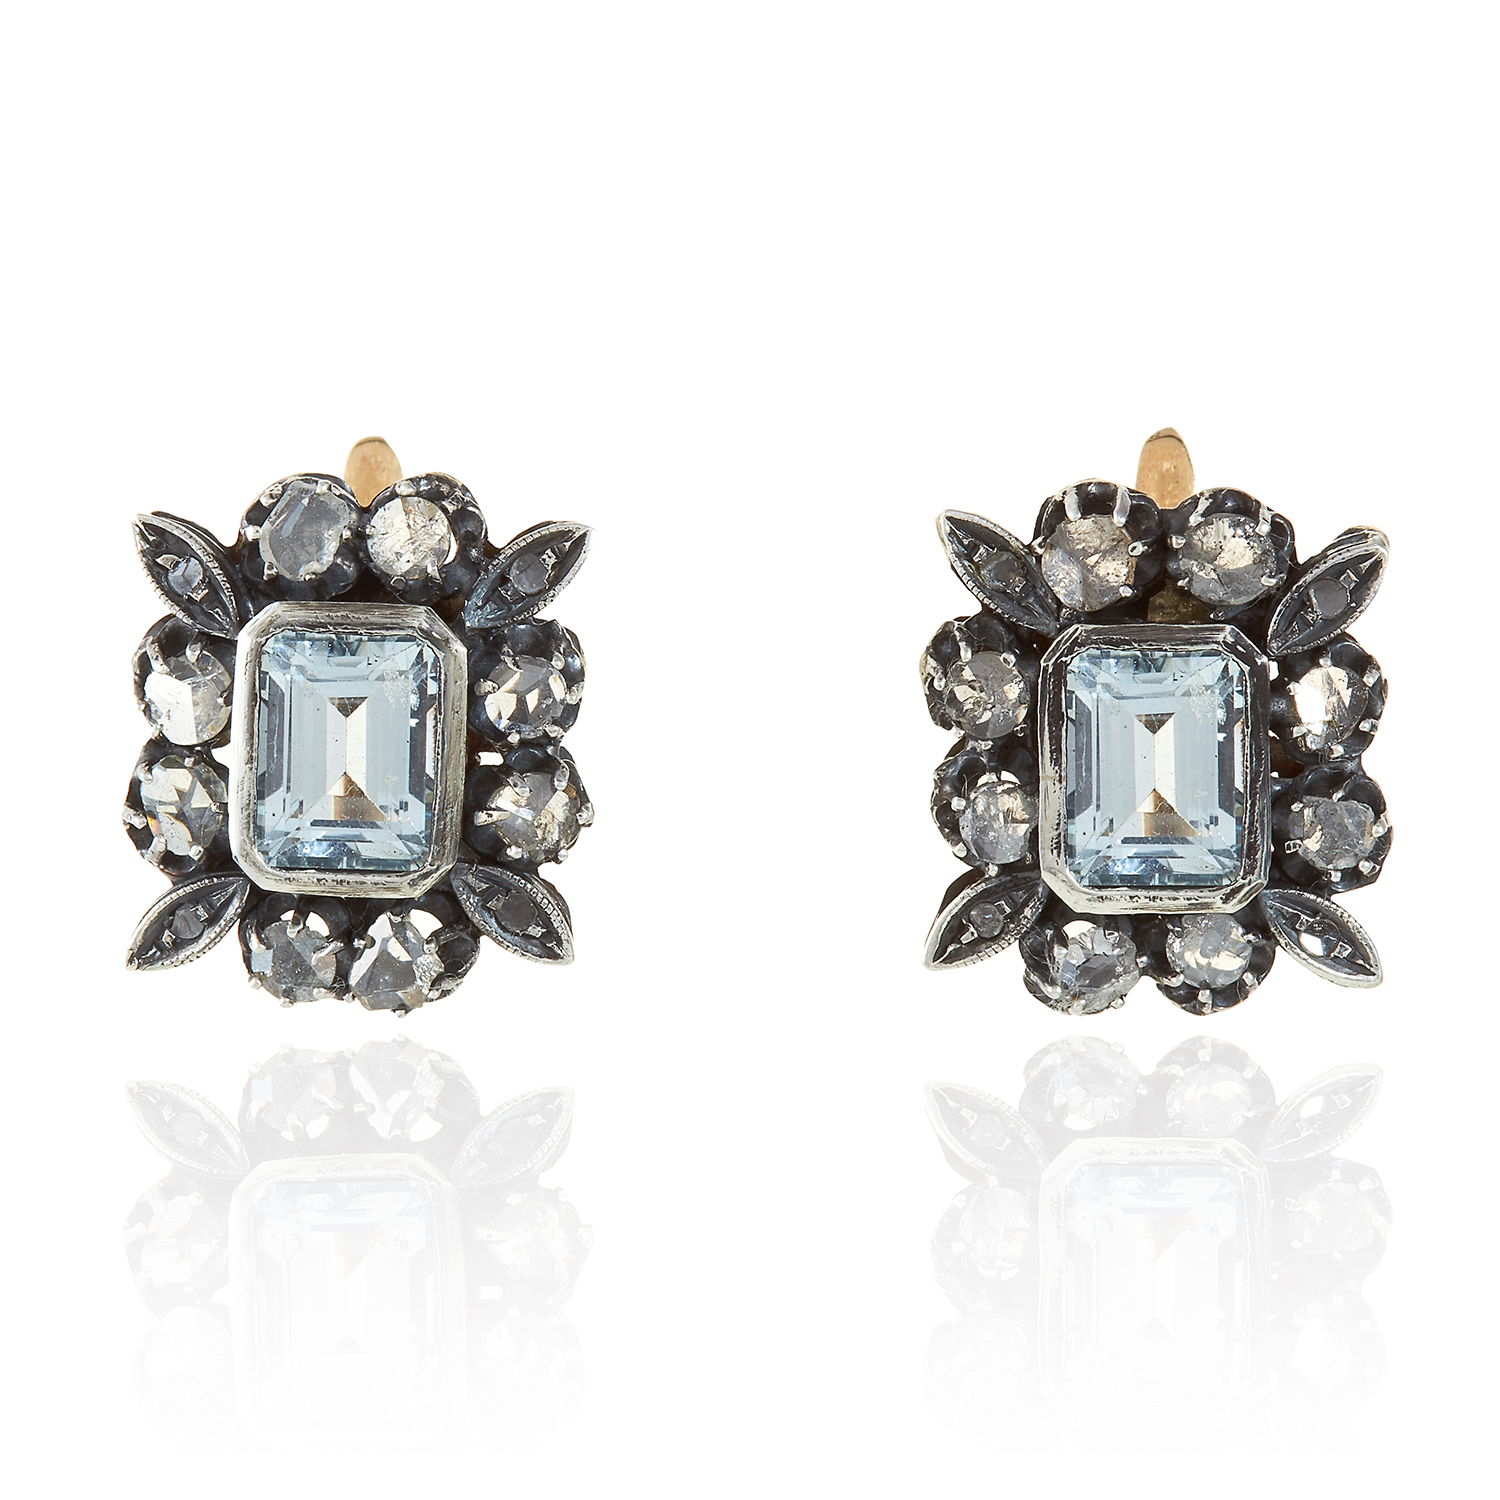 Los 315 - A PAIR OF AQUAMARINE AND DIAMOND EARRINGS in yellow gold and silver, the step cut aquamarines within